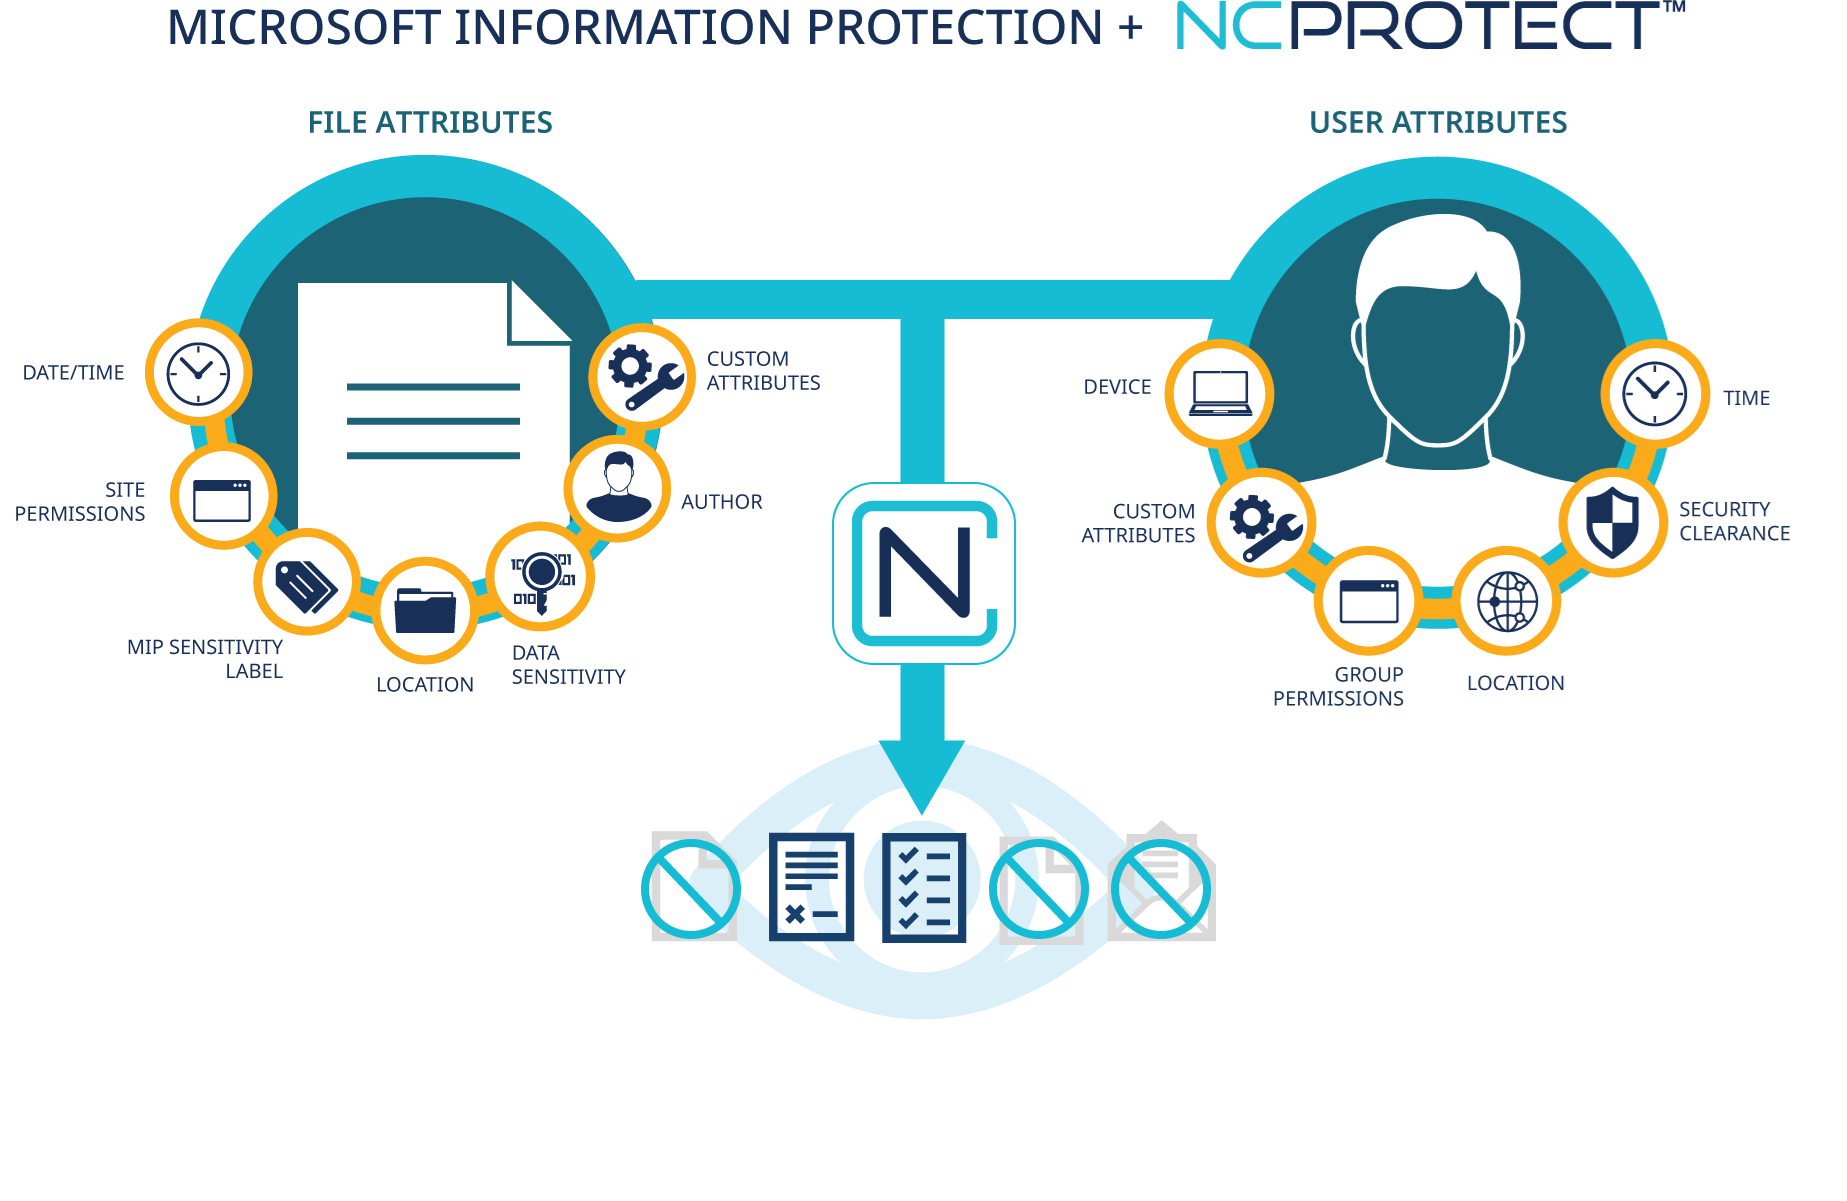 Image demonstrating the integration with NC Protect and Microsoft Information Protection.